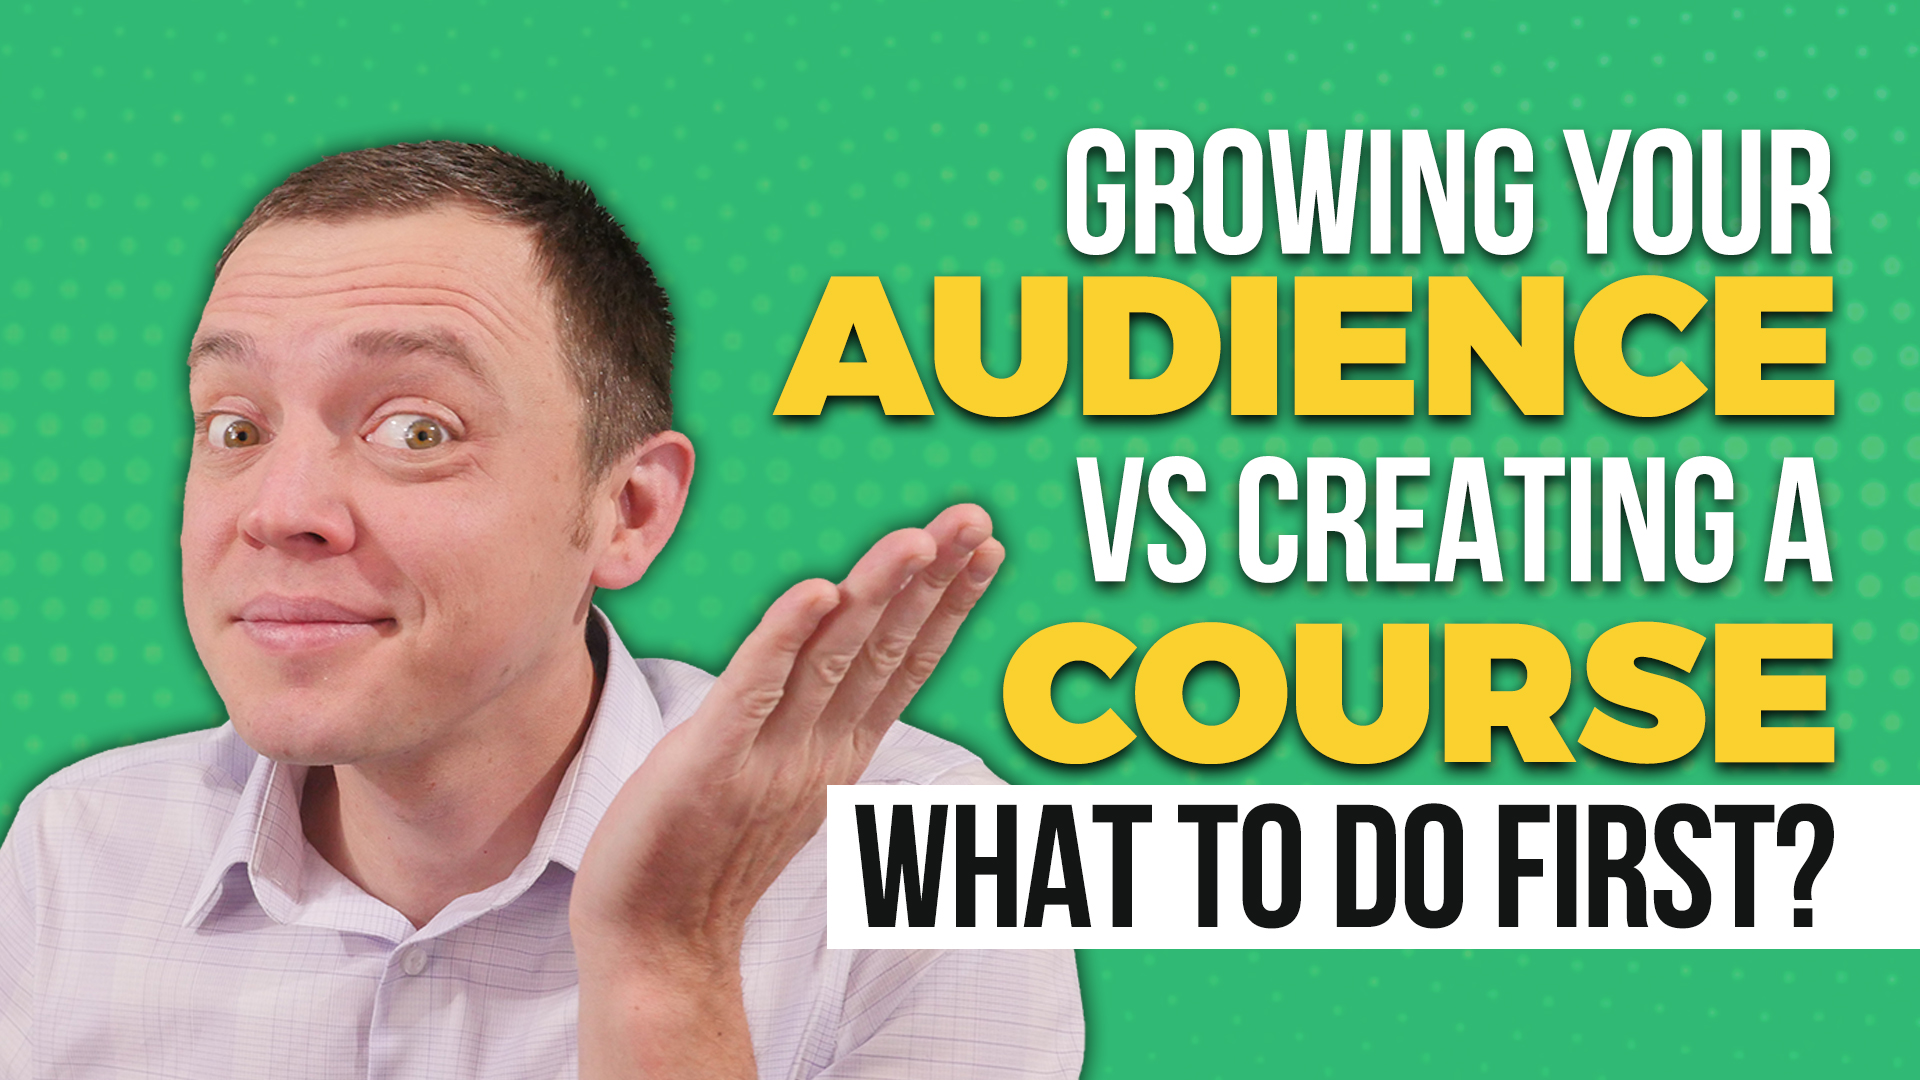 Grow Your Audience or Create a Video Course First